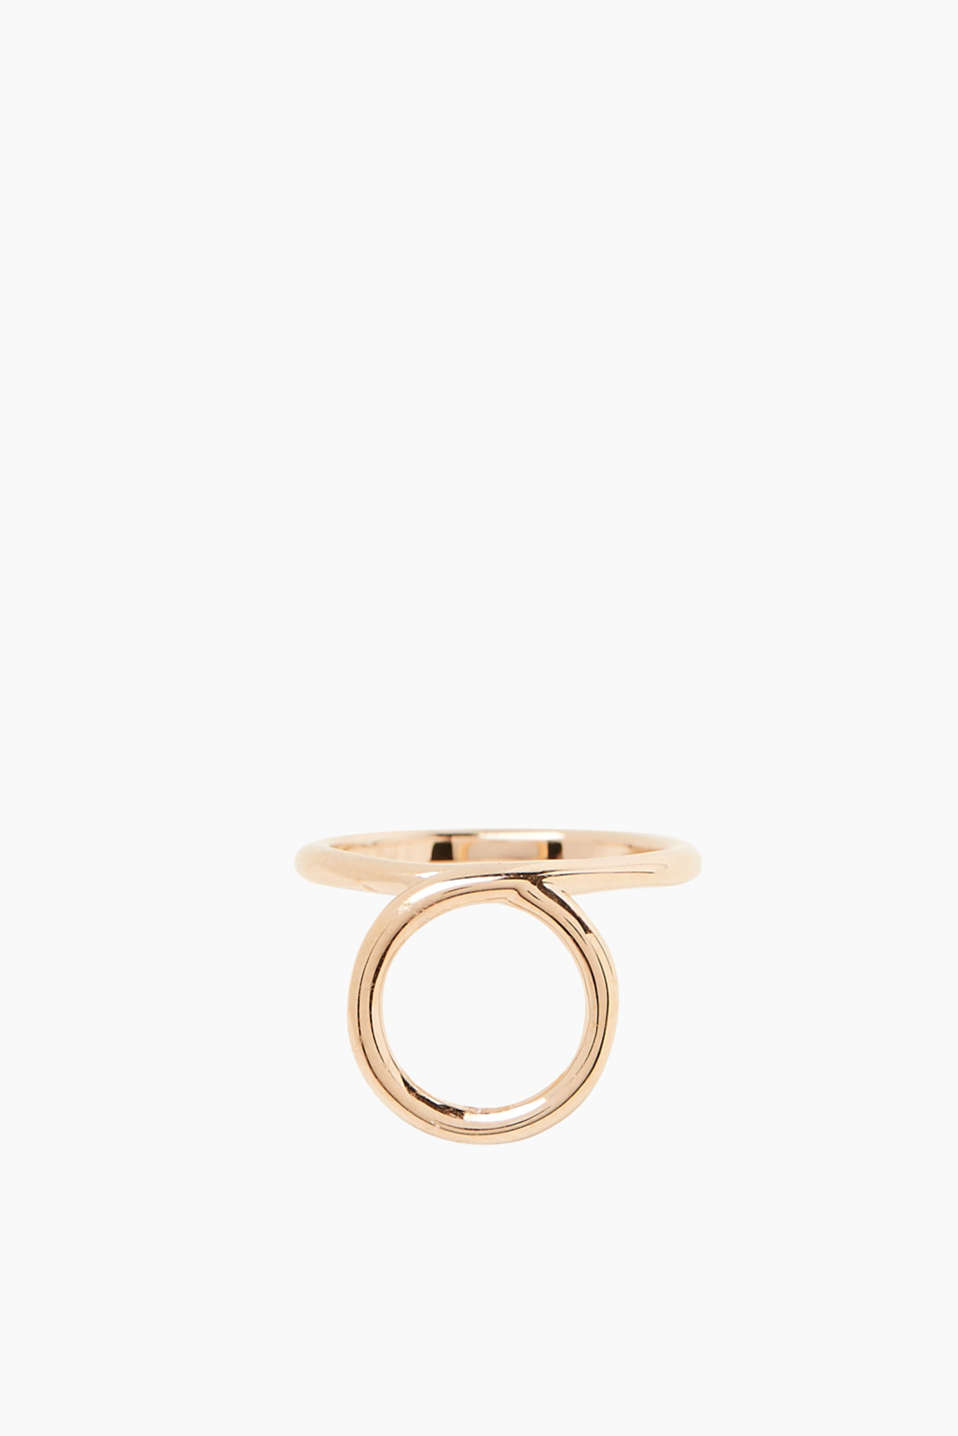 We love minimalist designs! This ring features rose gold plating.